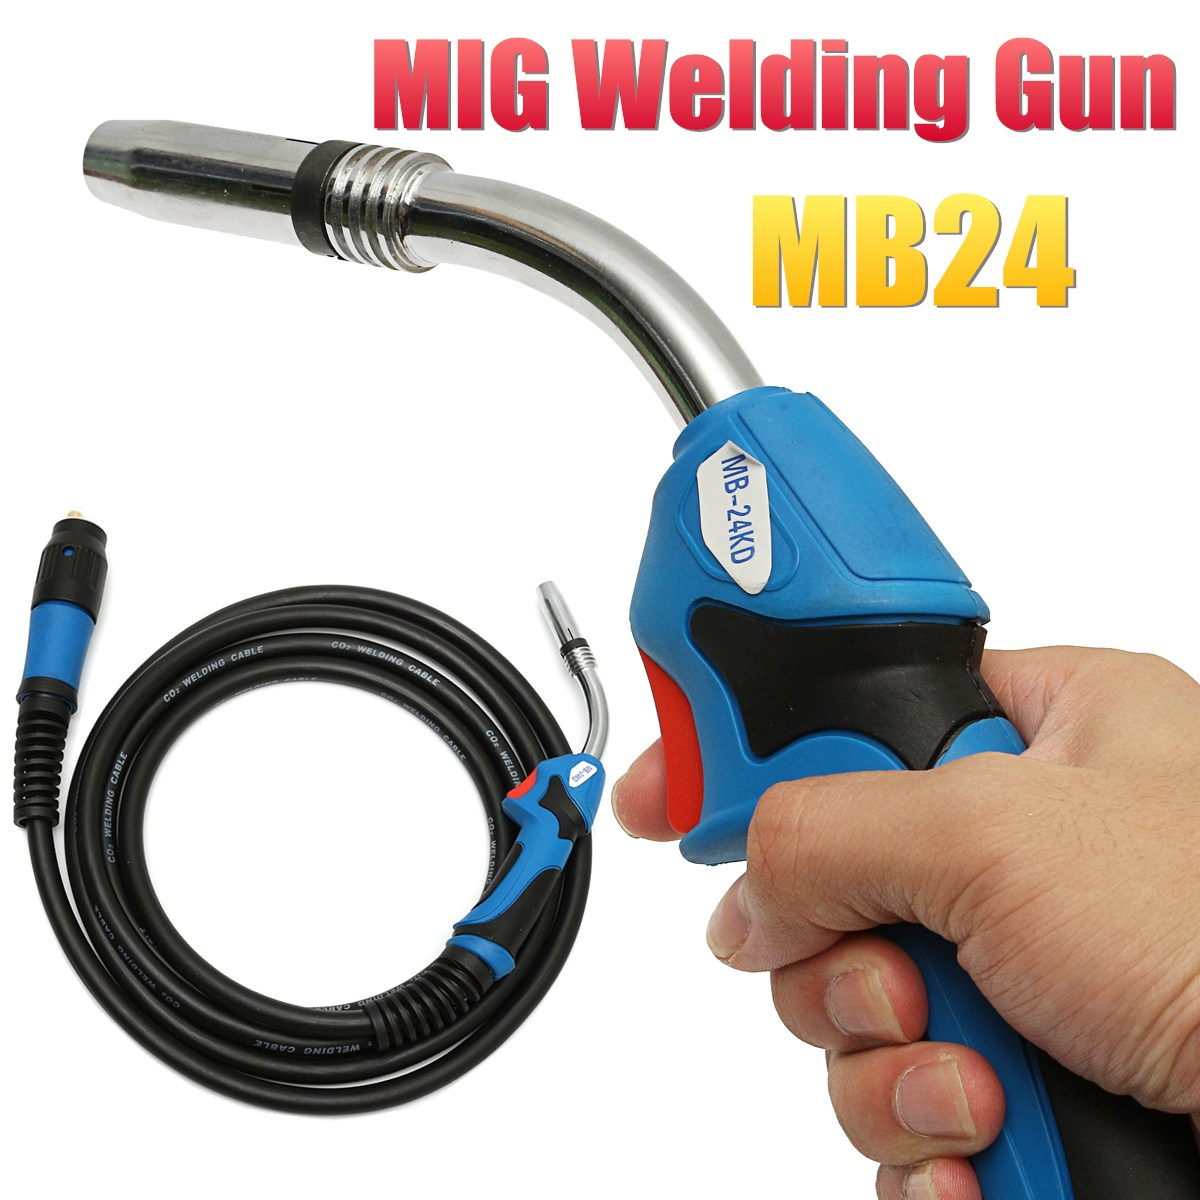 все цены на 1Pcs MB24 MIG Welding Gun-Torch with 5 Meter Length Lead Electric Welder Torch Stinger Parts